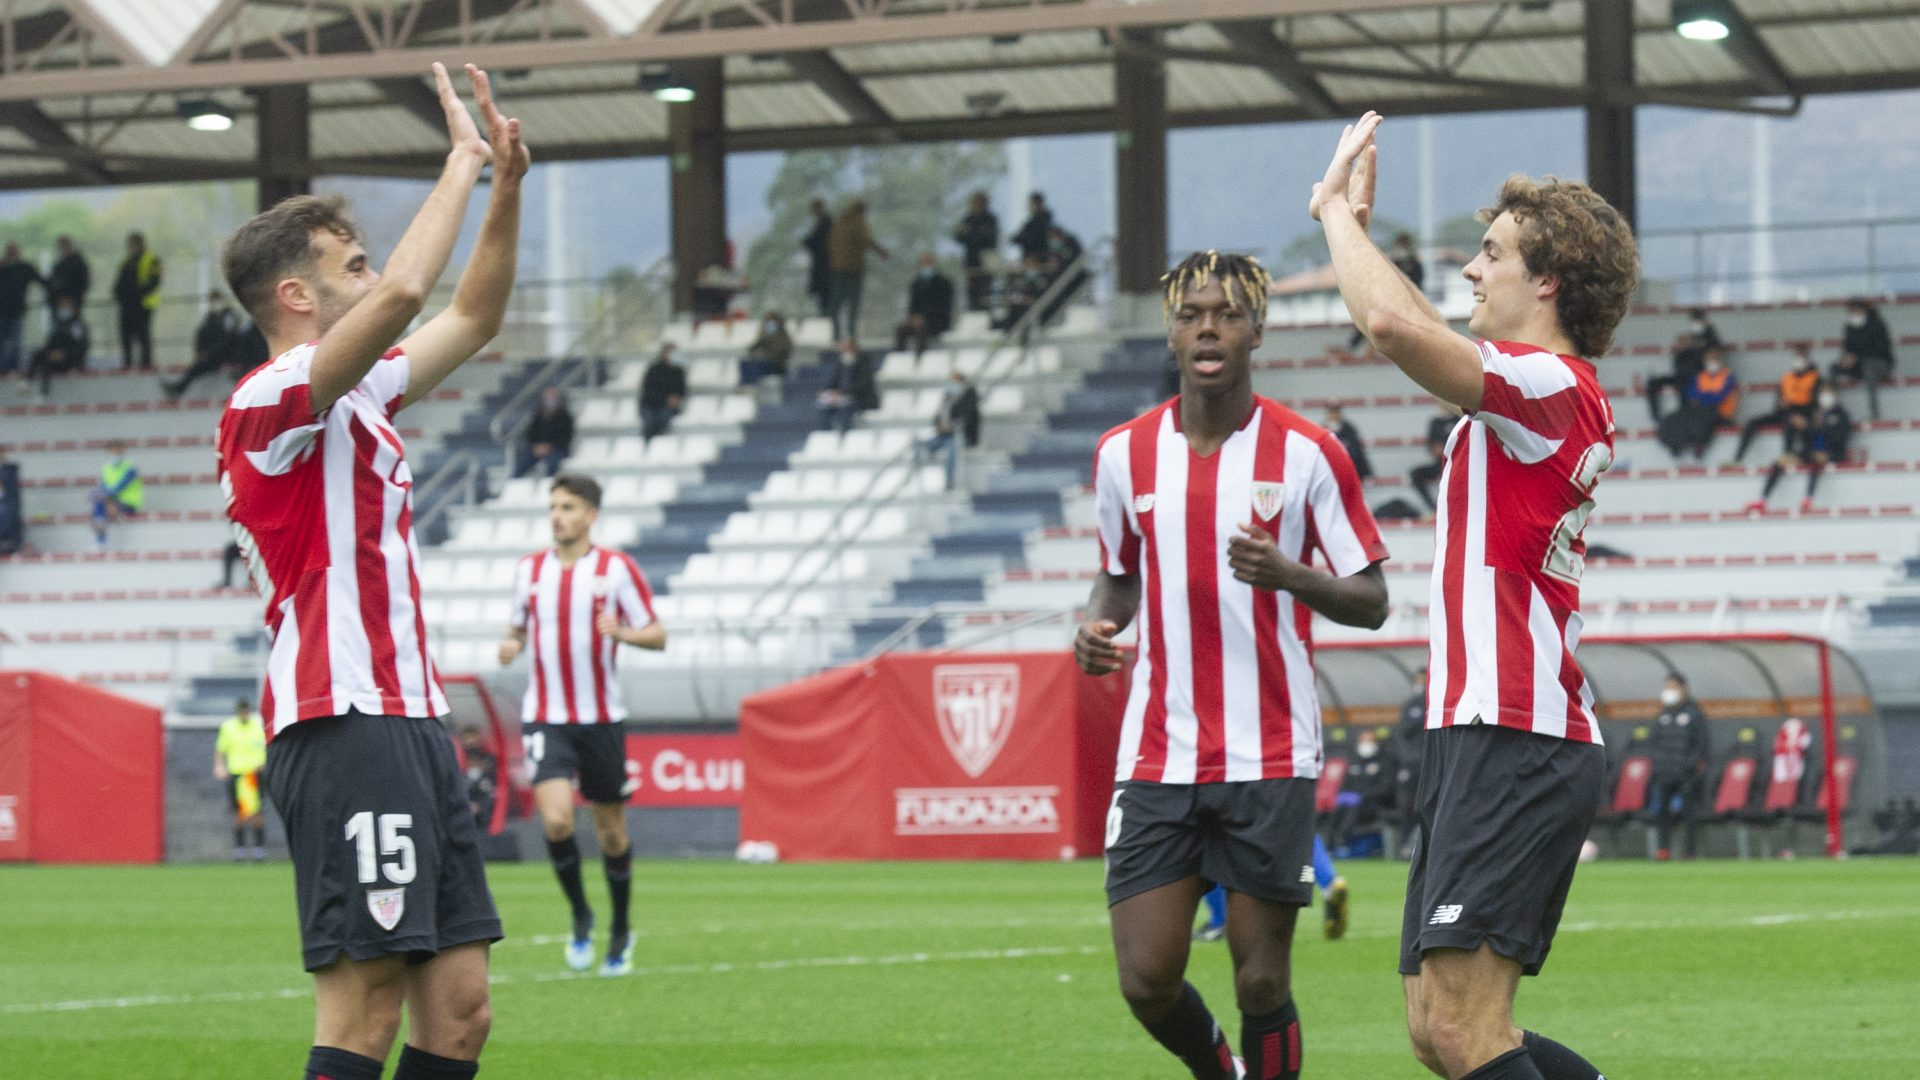 Bilbao Athletic – CD Laredo (19. J – 2. B Maila)